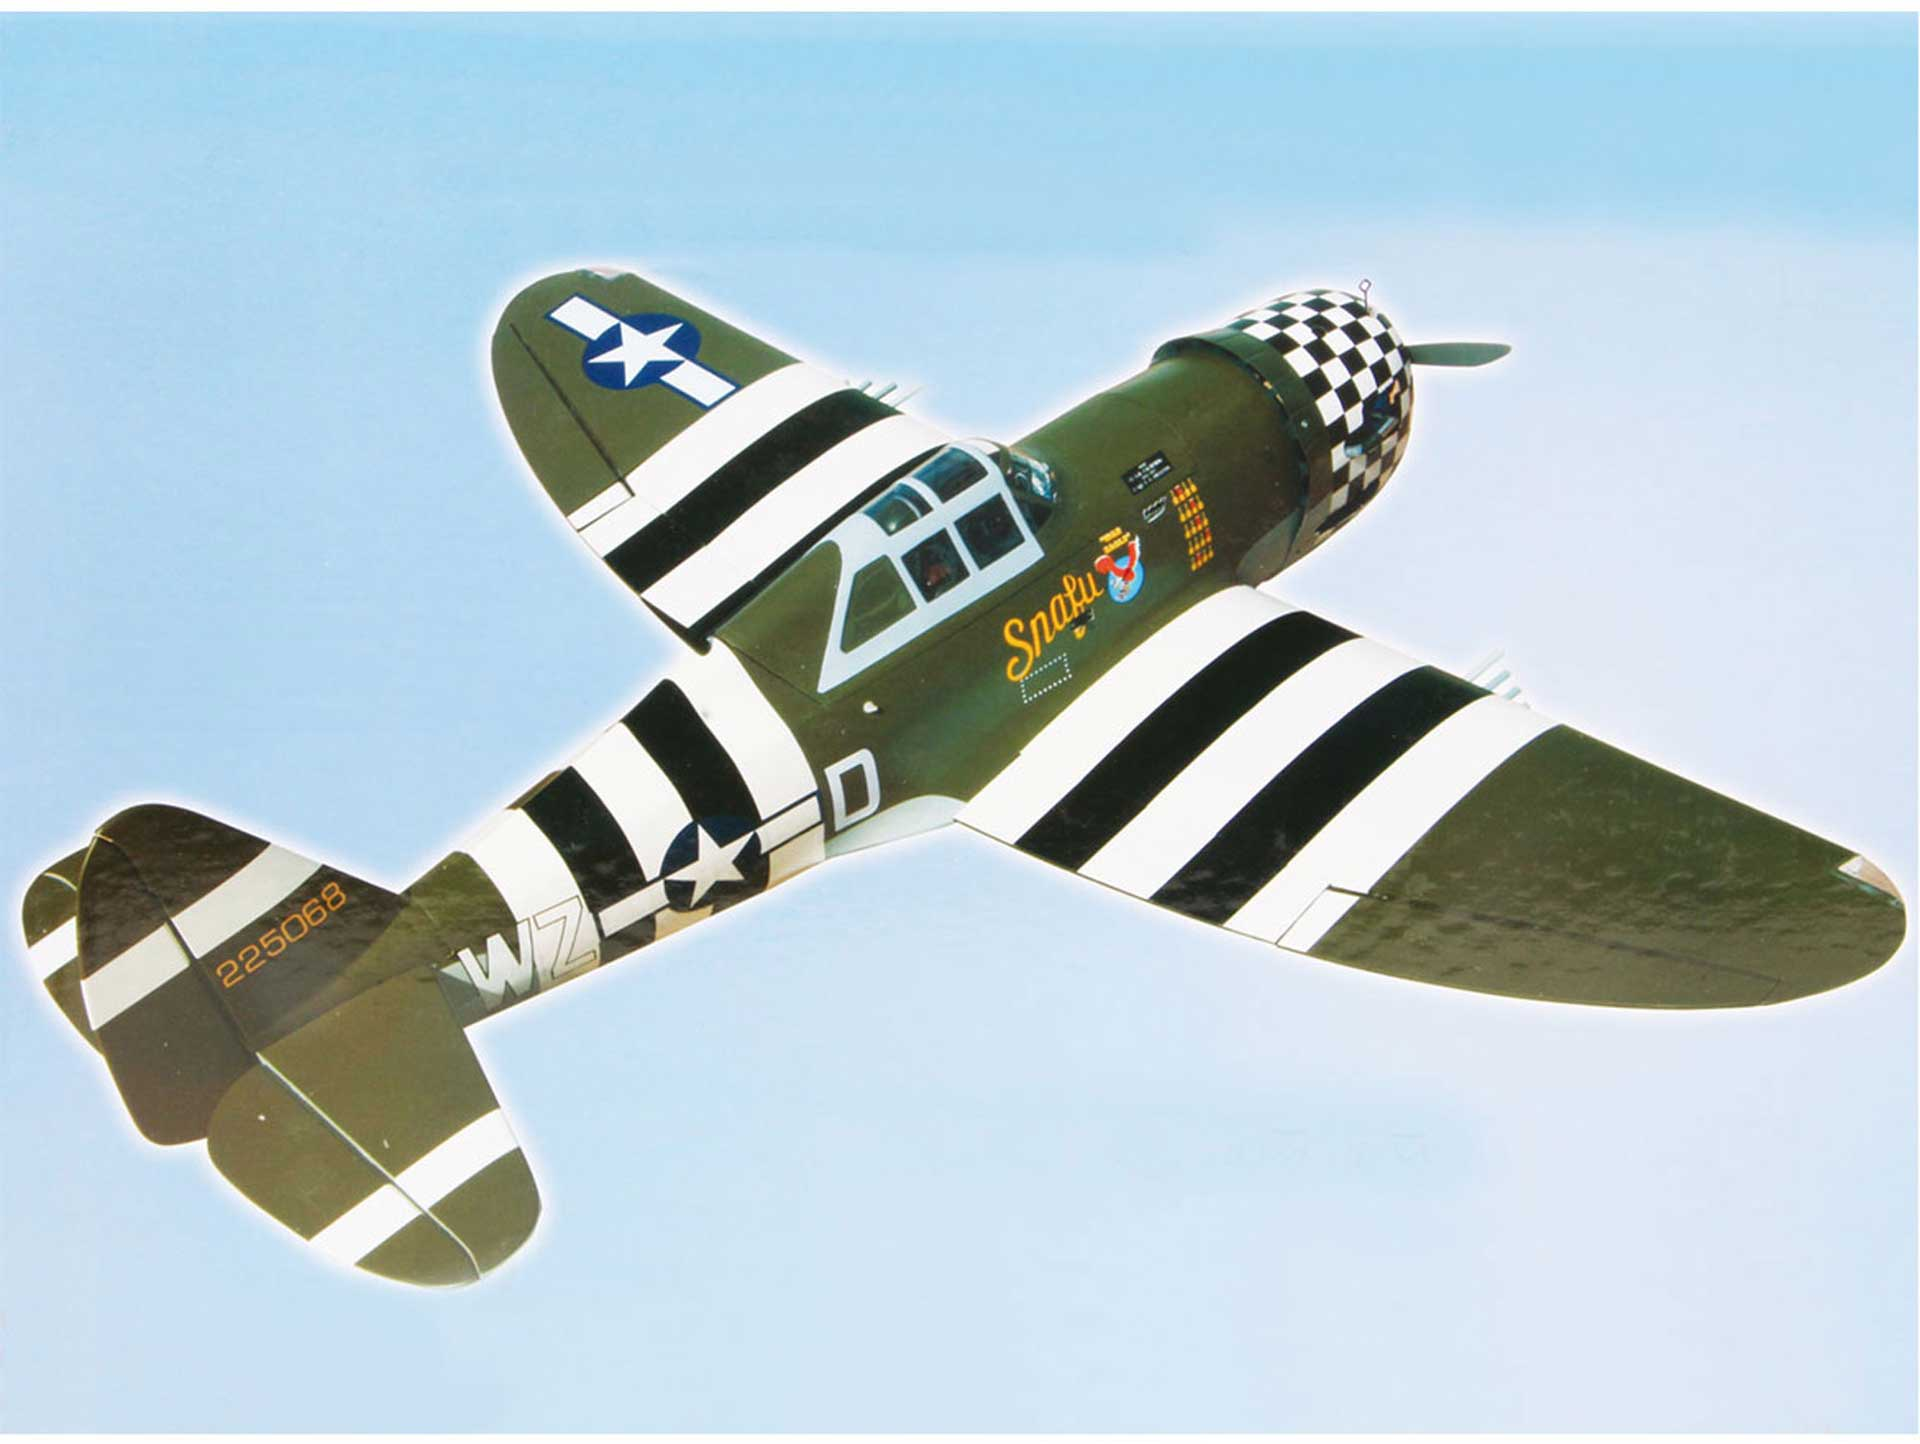 """SG-MODELS P-47G THUNDERBOLT 60 """"SNAFU"""" WITH RETRACTS AND LIGHTING"""